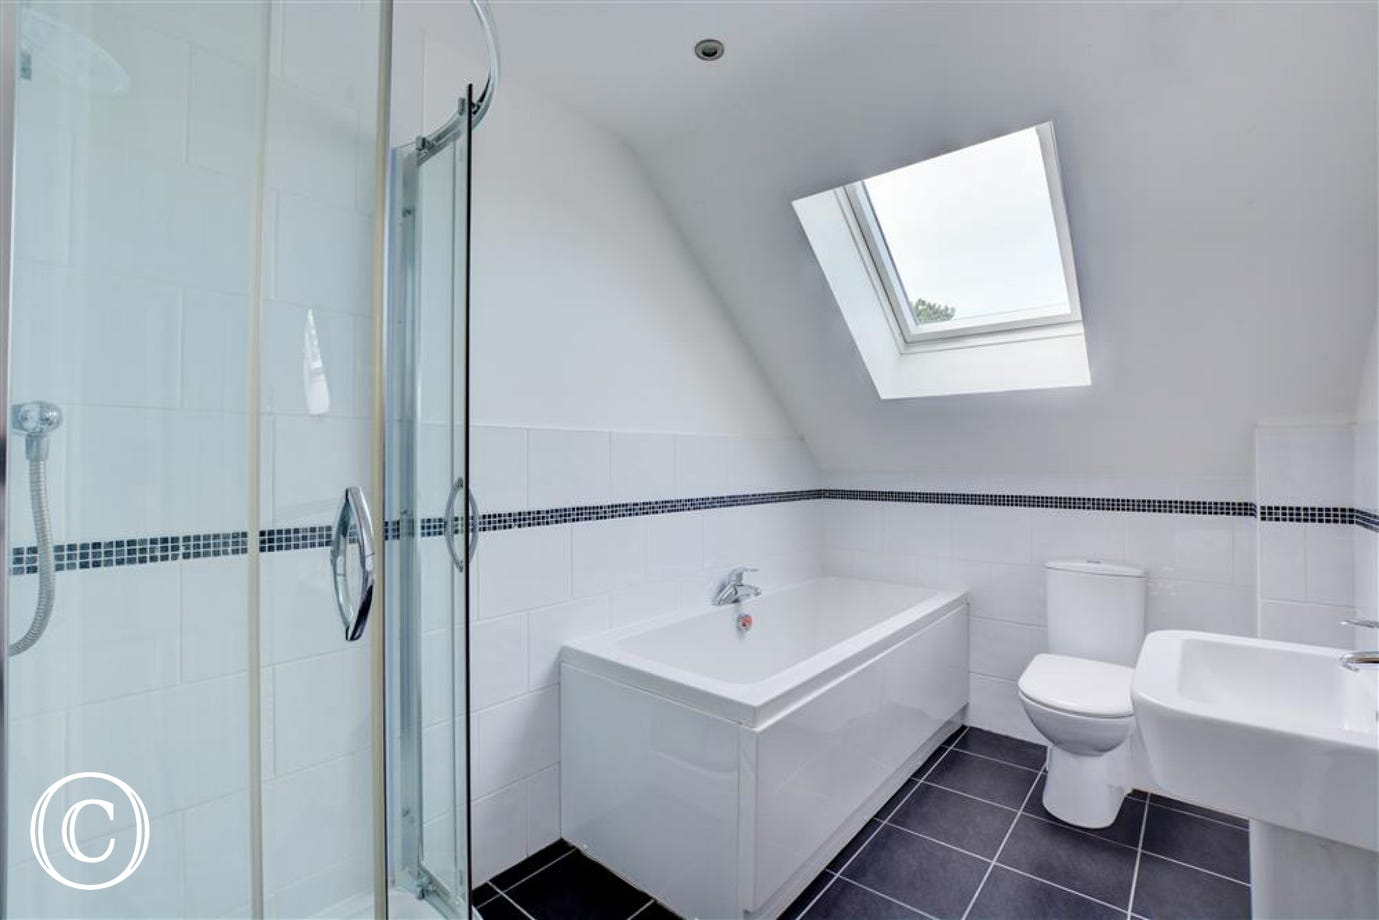 Lovely modern bathroom with bath and seperate shower cubicle